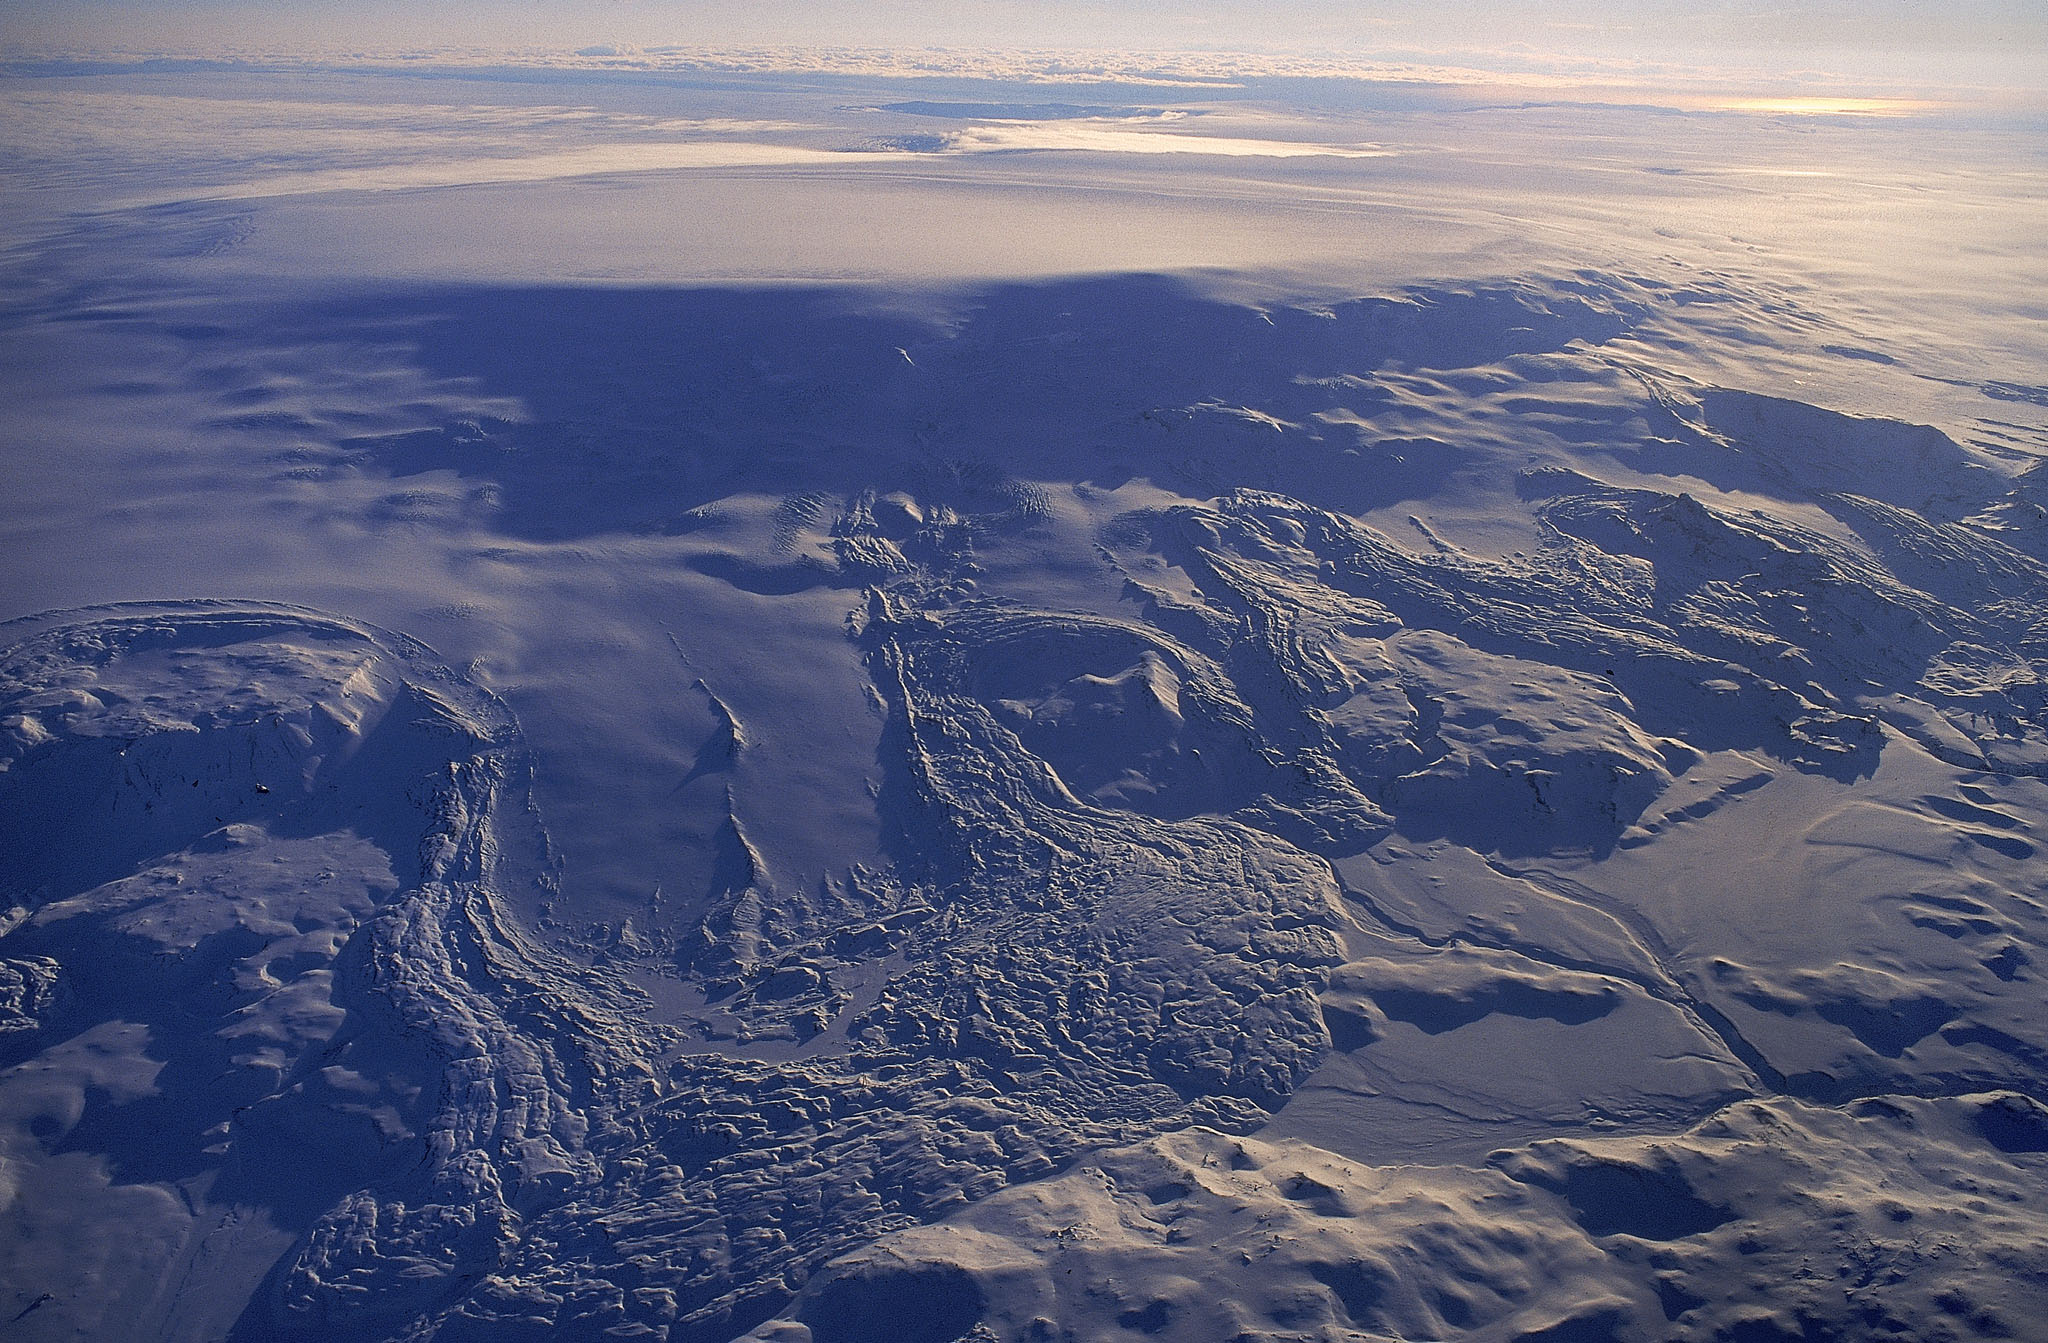 An aerial photo of the Vatnajökull glacier directly above the Bárðarbunga volcano, showing its ice-filled caldera.